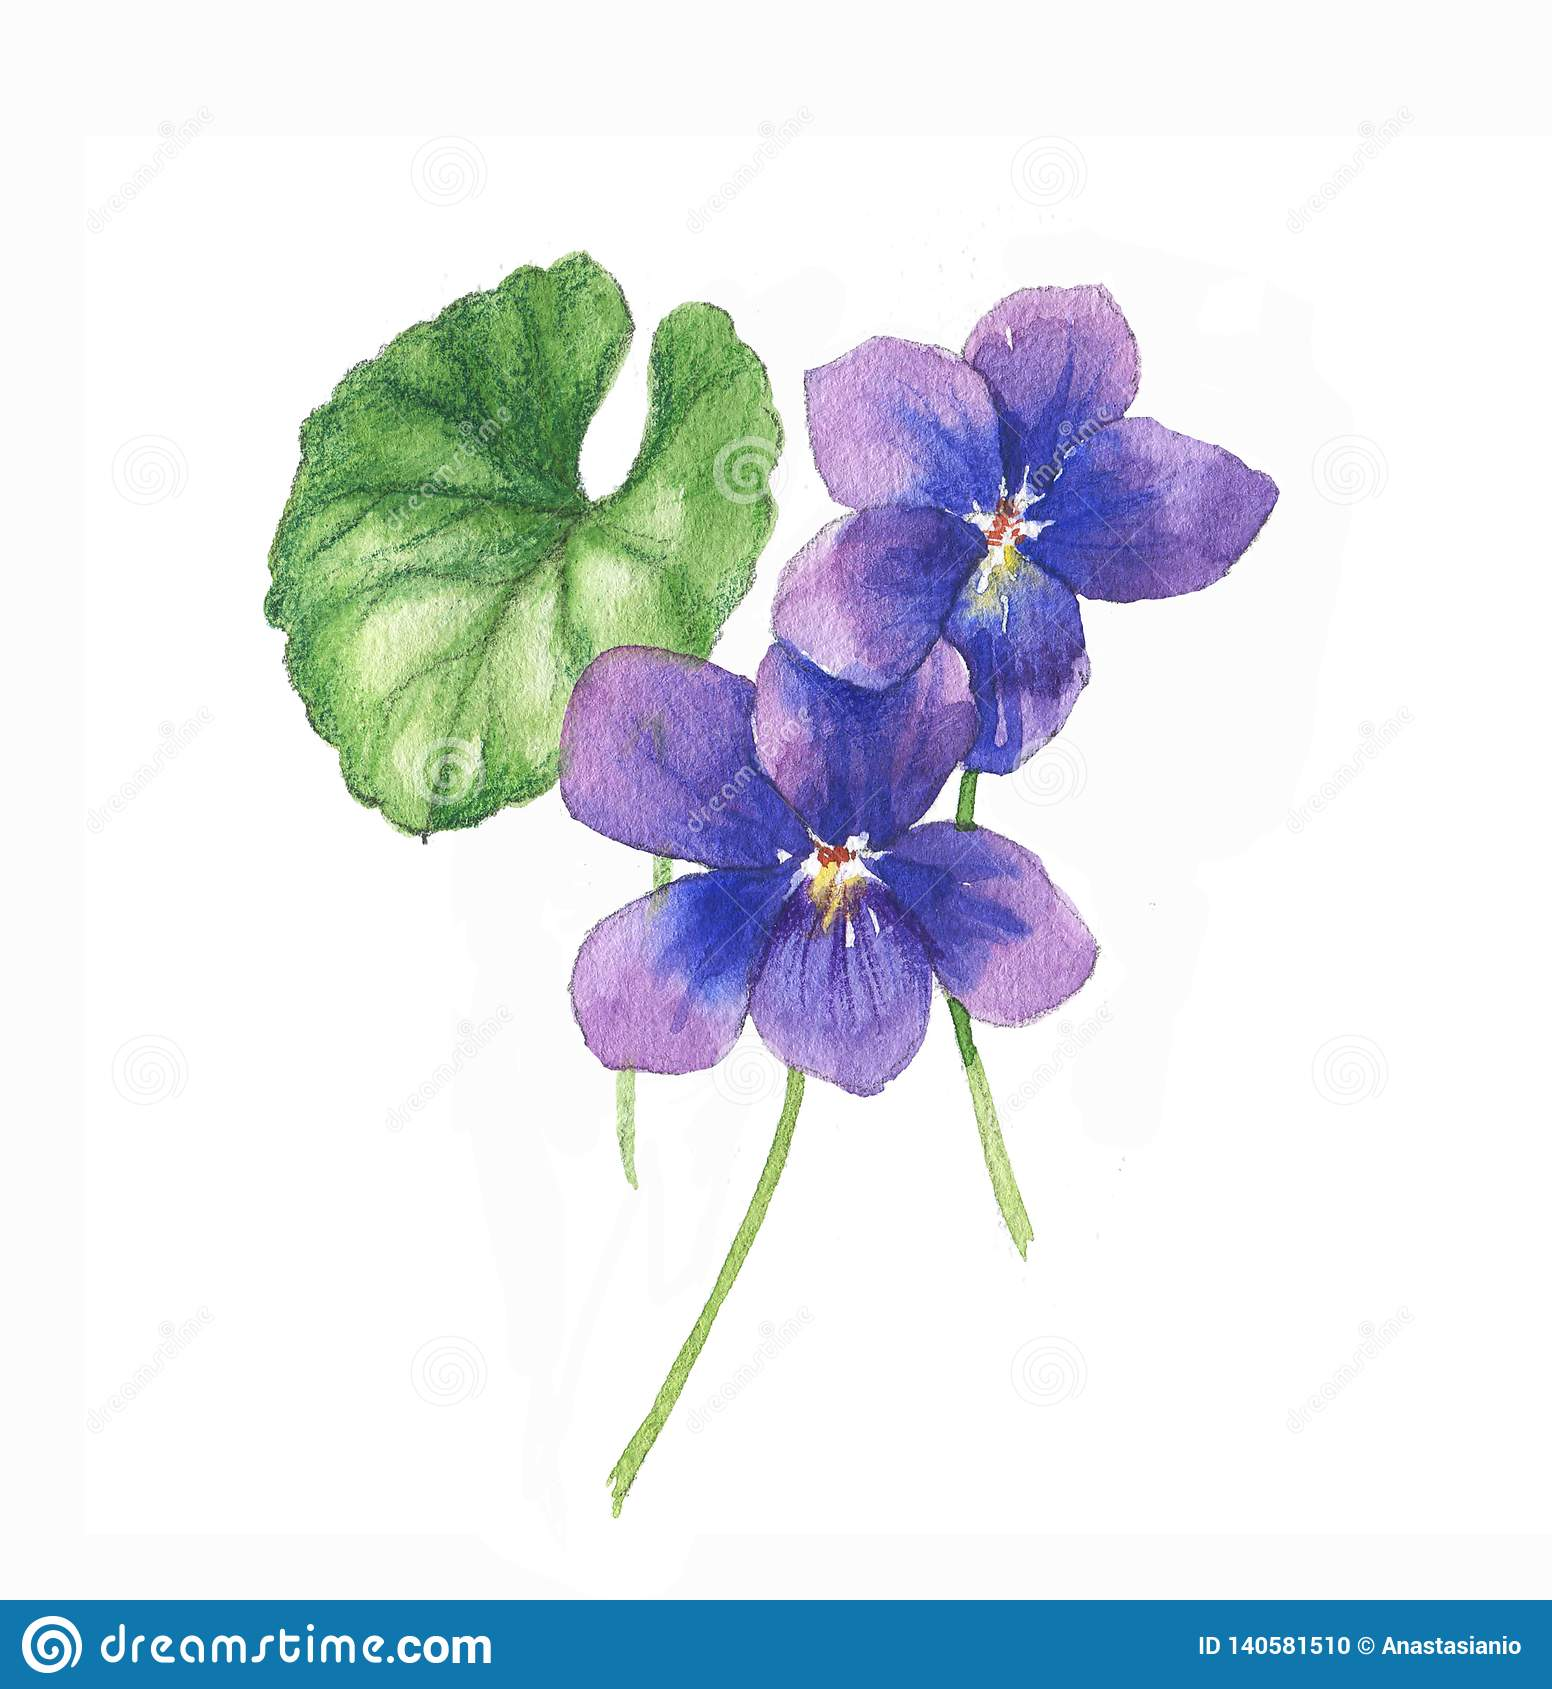 Hand Drawn Watercolor Illustration Of The Isolated Violets Flowers Stock Illustration Illustration Of Natural Bouquet 140581510